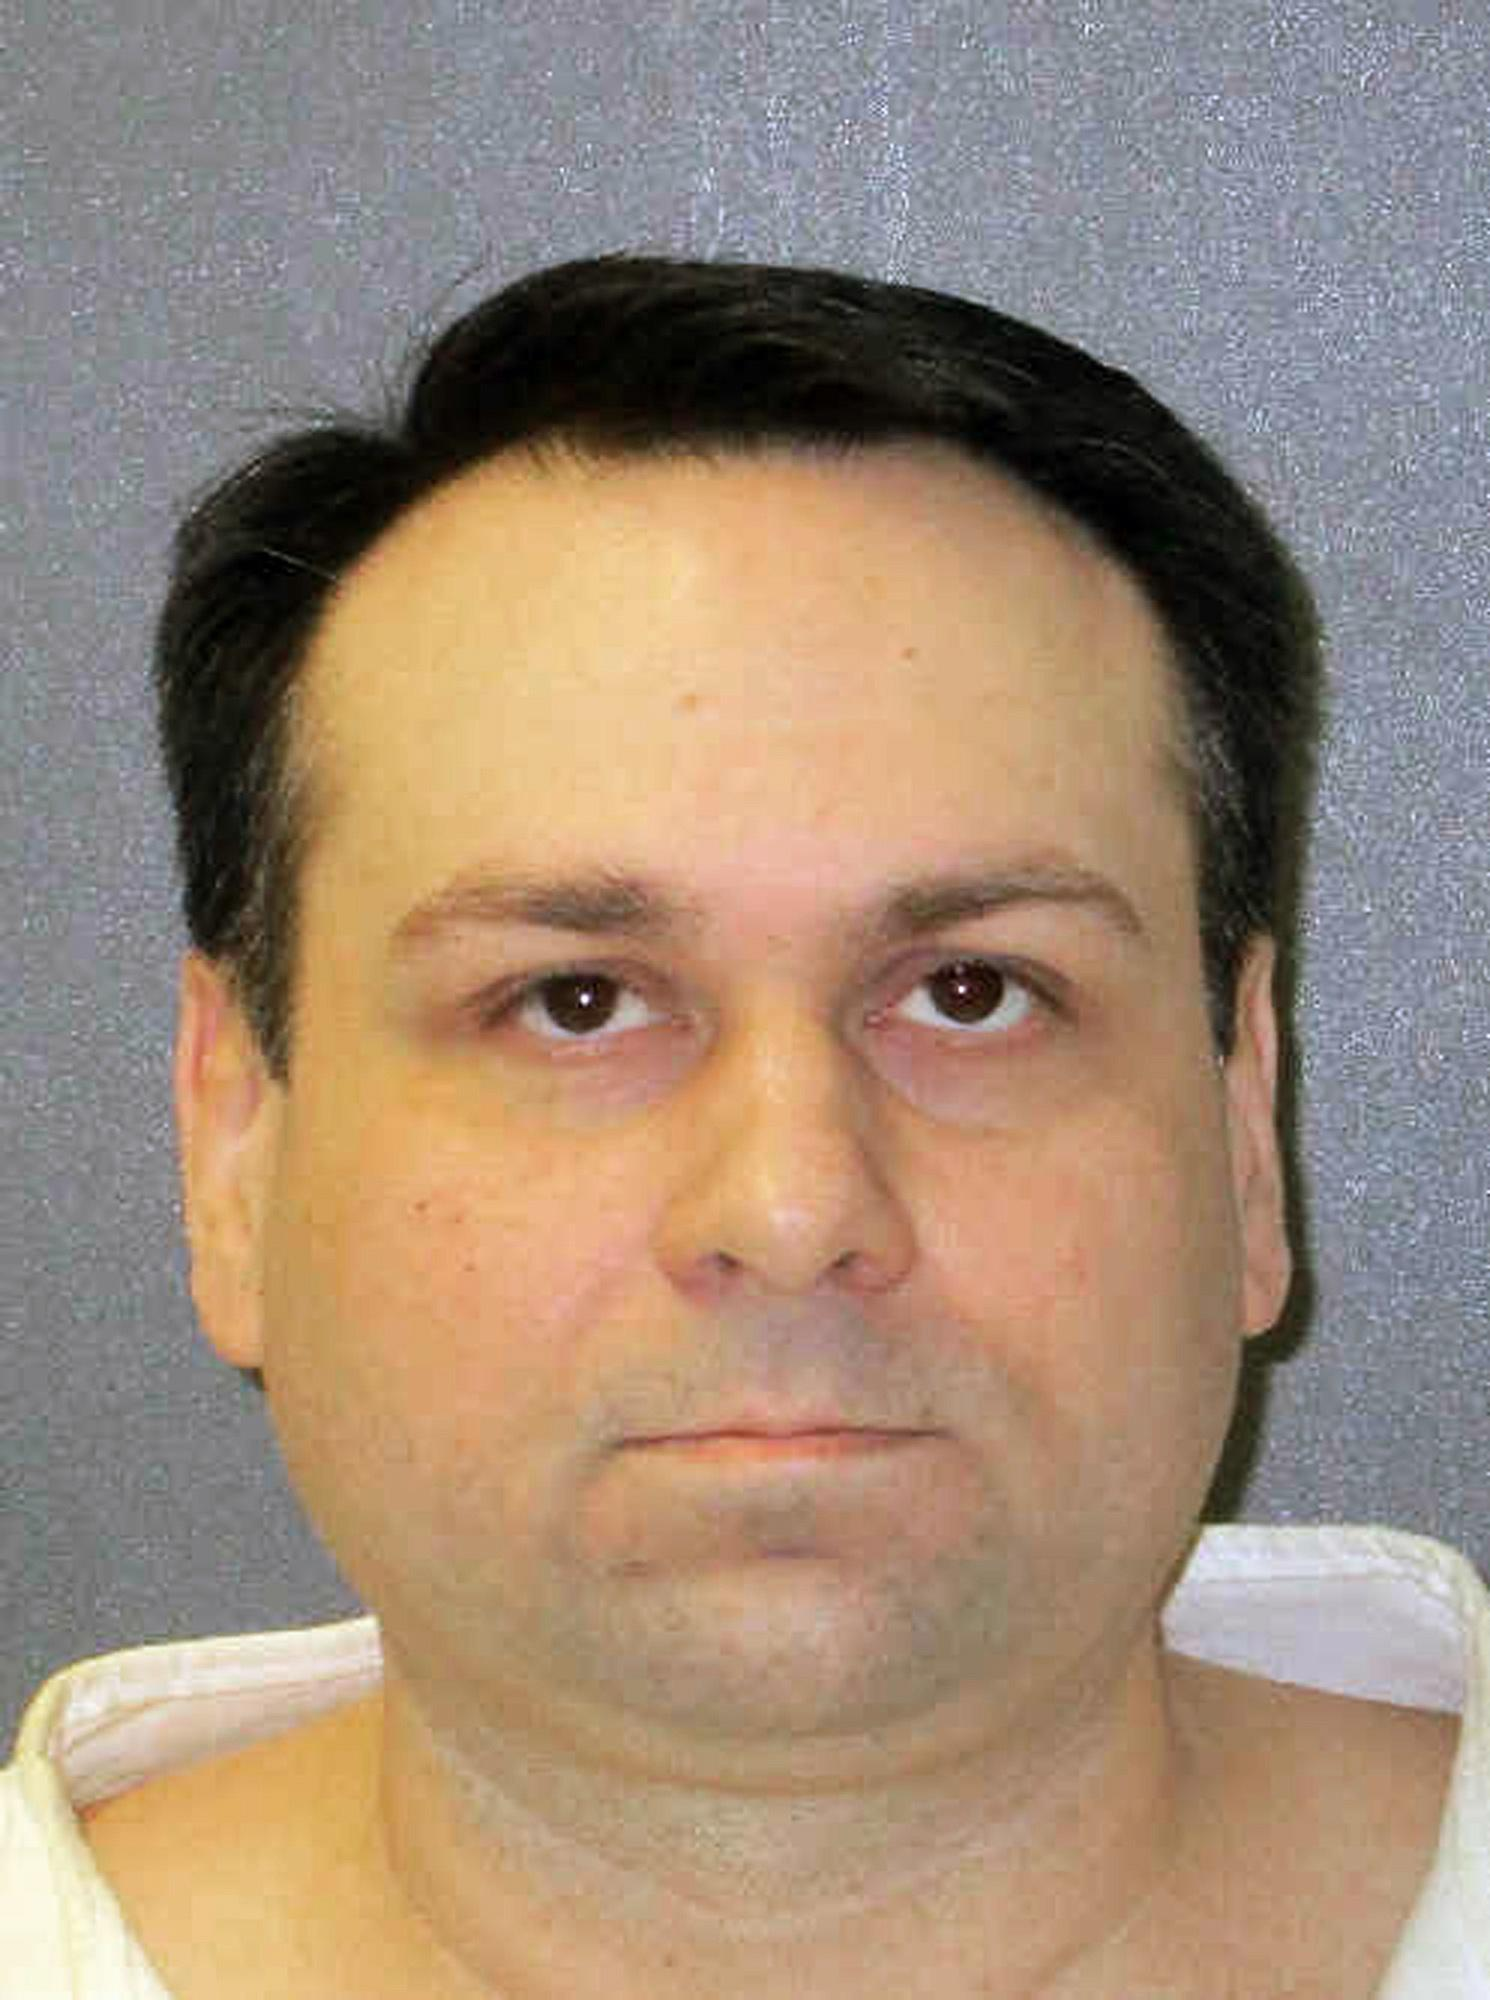 John King, convicted ringleader in Texas dragging death of James Byrd Jr., to be executed